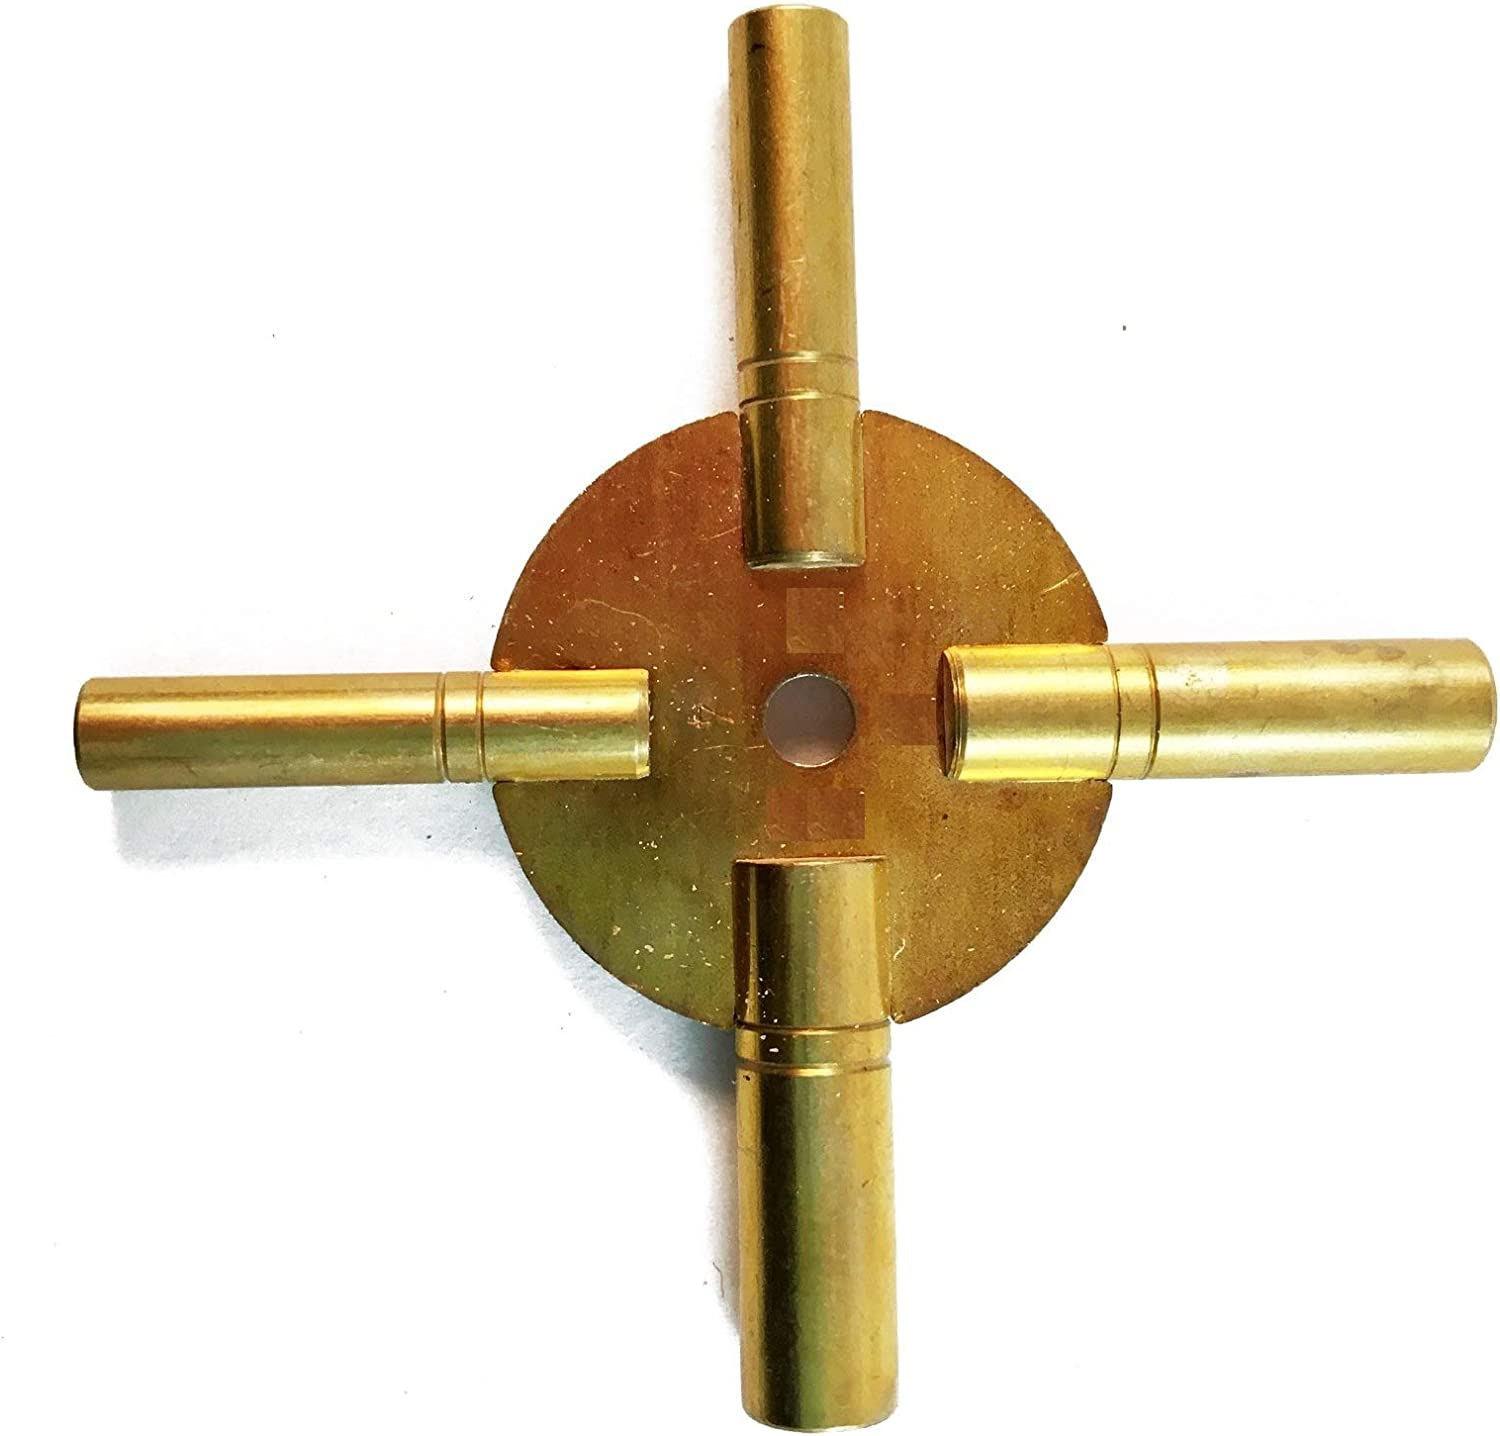 Master New color Key for All Outlet sale feature Ship Clock - in Pie One Prong Total 4 Brass